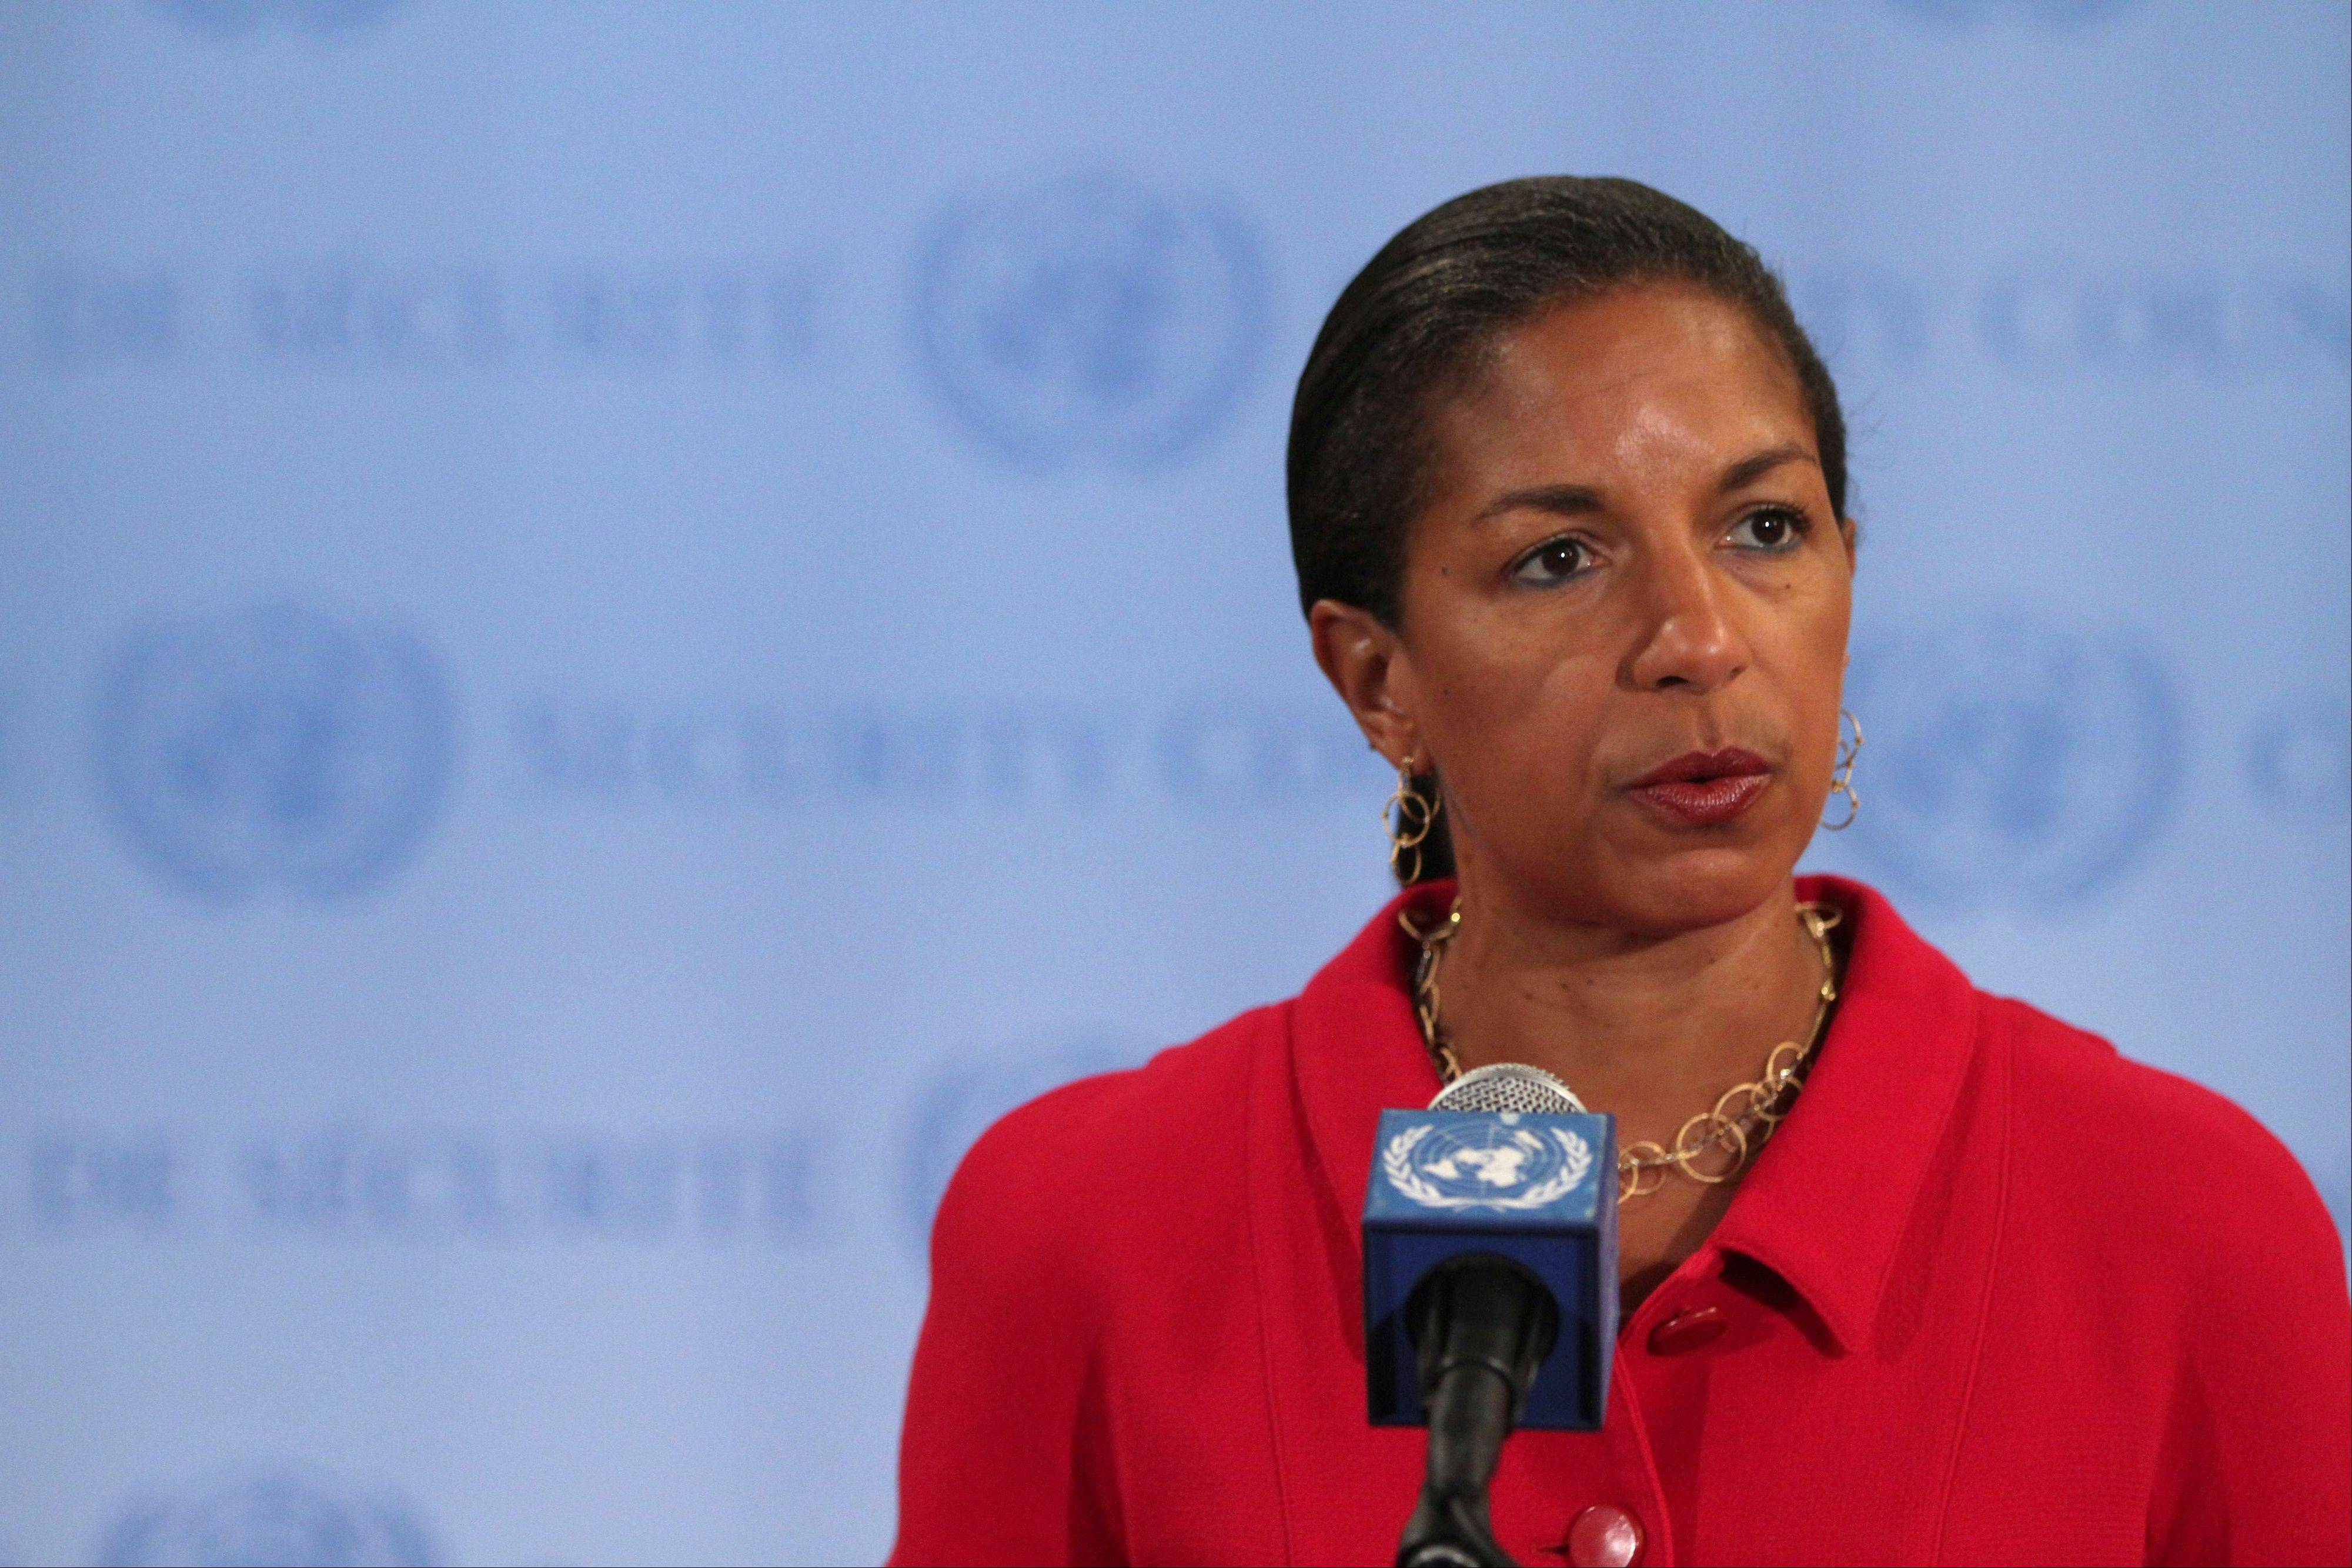 U.S. Ambassador to the United Nations Susan Rice has been criticized by Republicans for maintaining the attack on the U.S. embassy in Benghazi, Libya, was the result of a spontaneous demonstration beyond a point others in Washington already suspected the attack to have been carried out by terrorists.